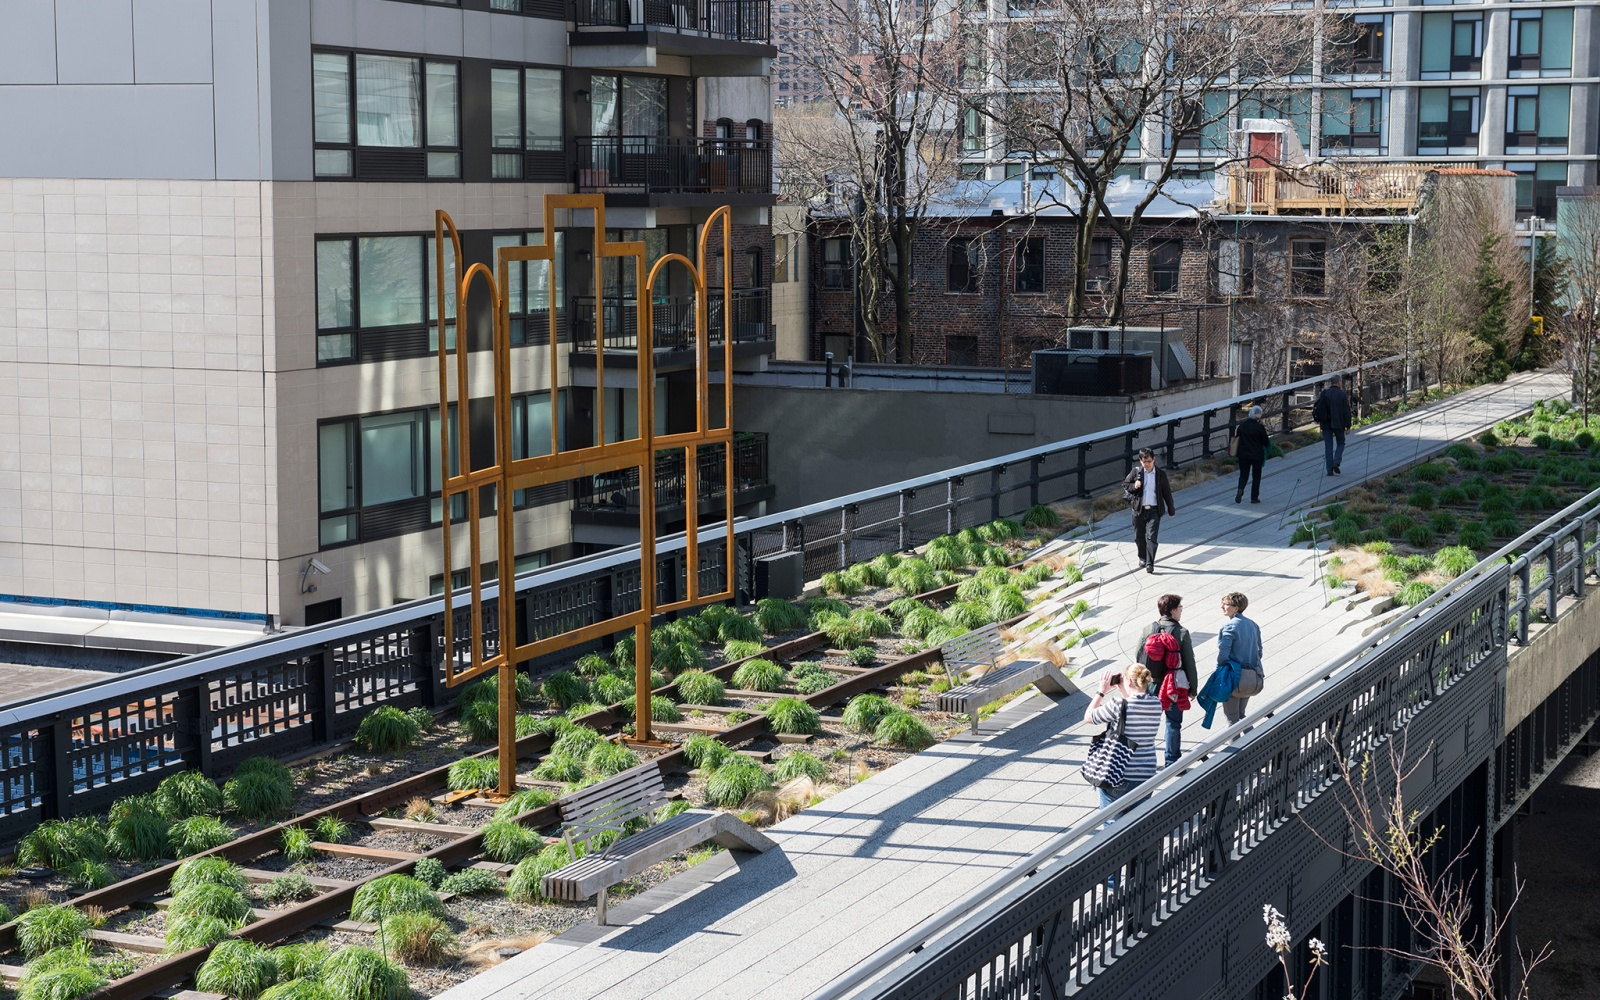 Stroll on the High Line